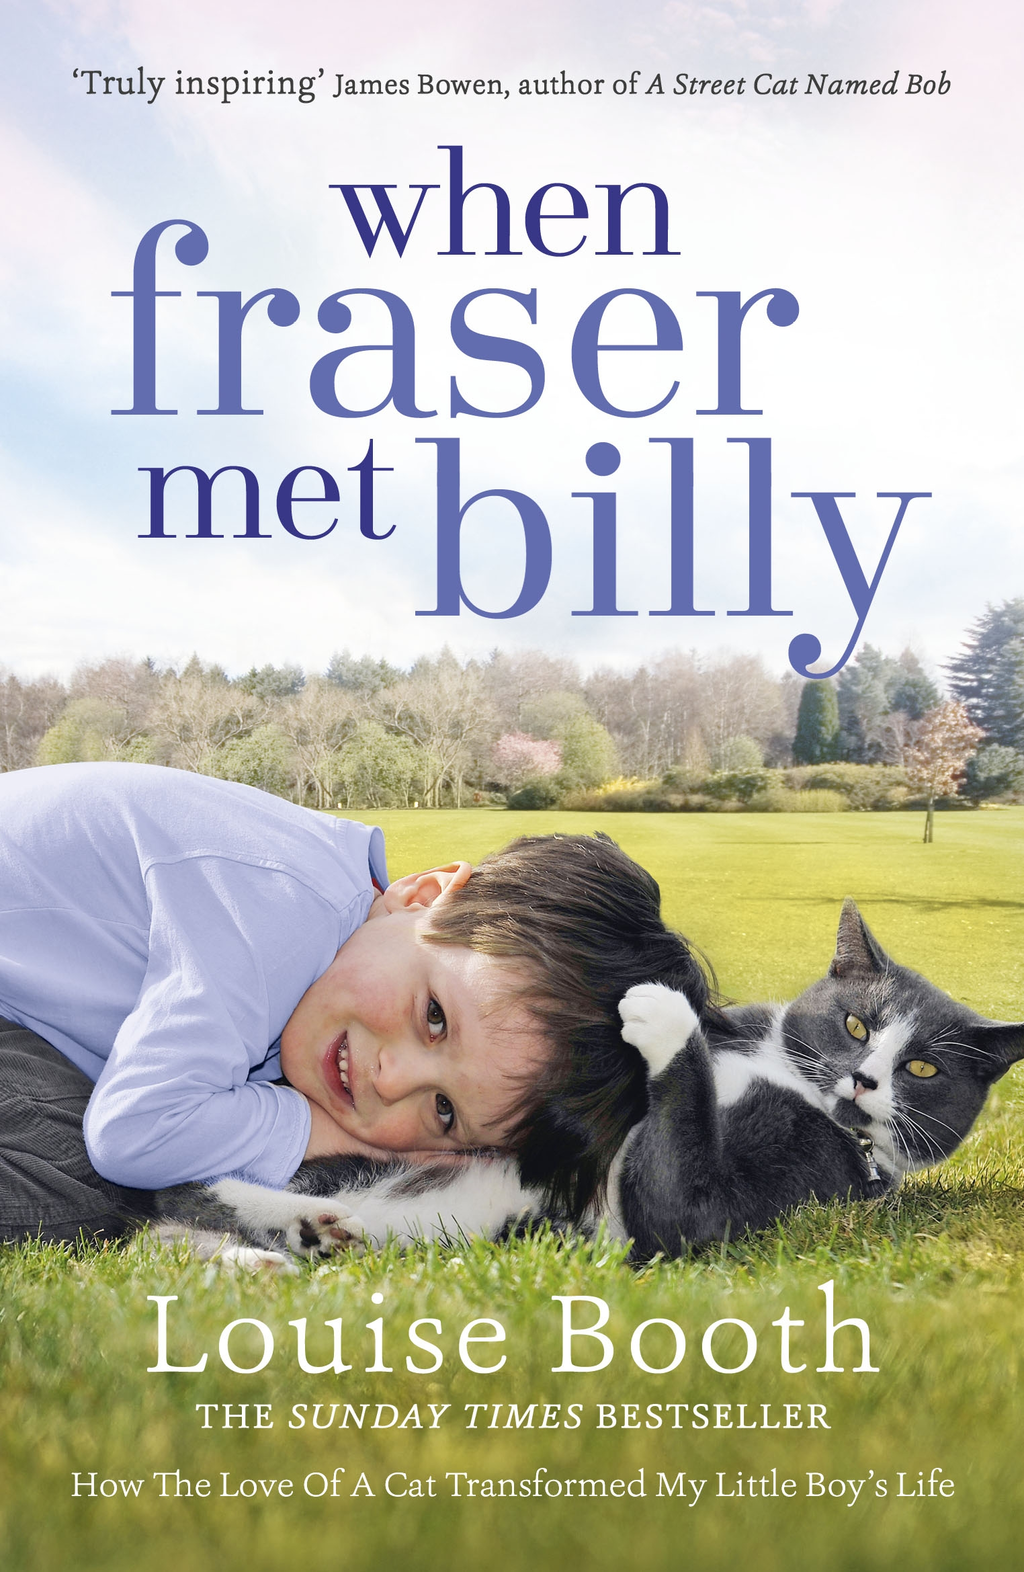 When Fraser Met Billy How The Love Of A Cat Transformed My Little Boy's Life